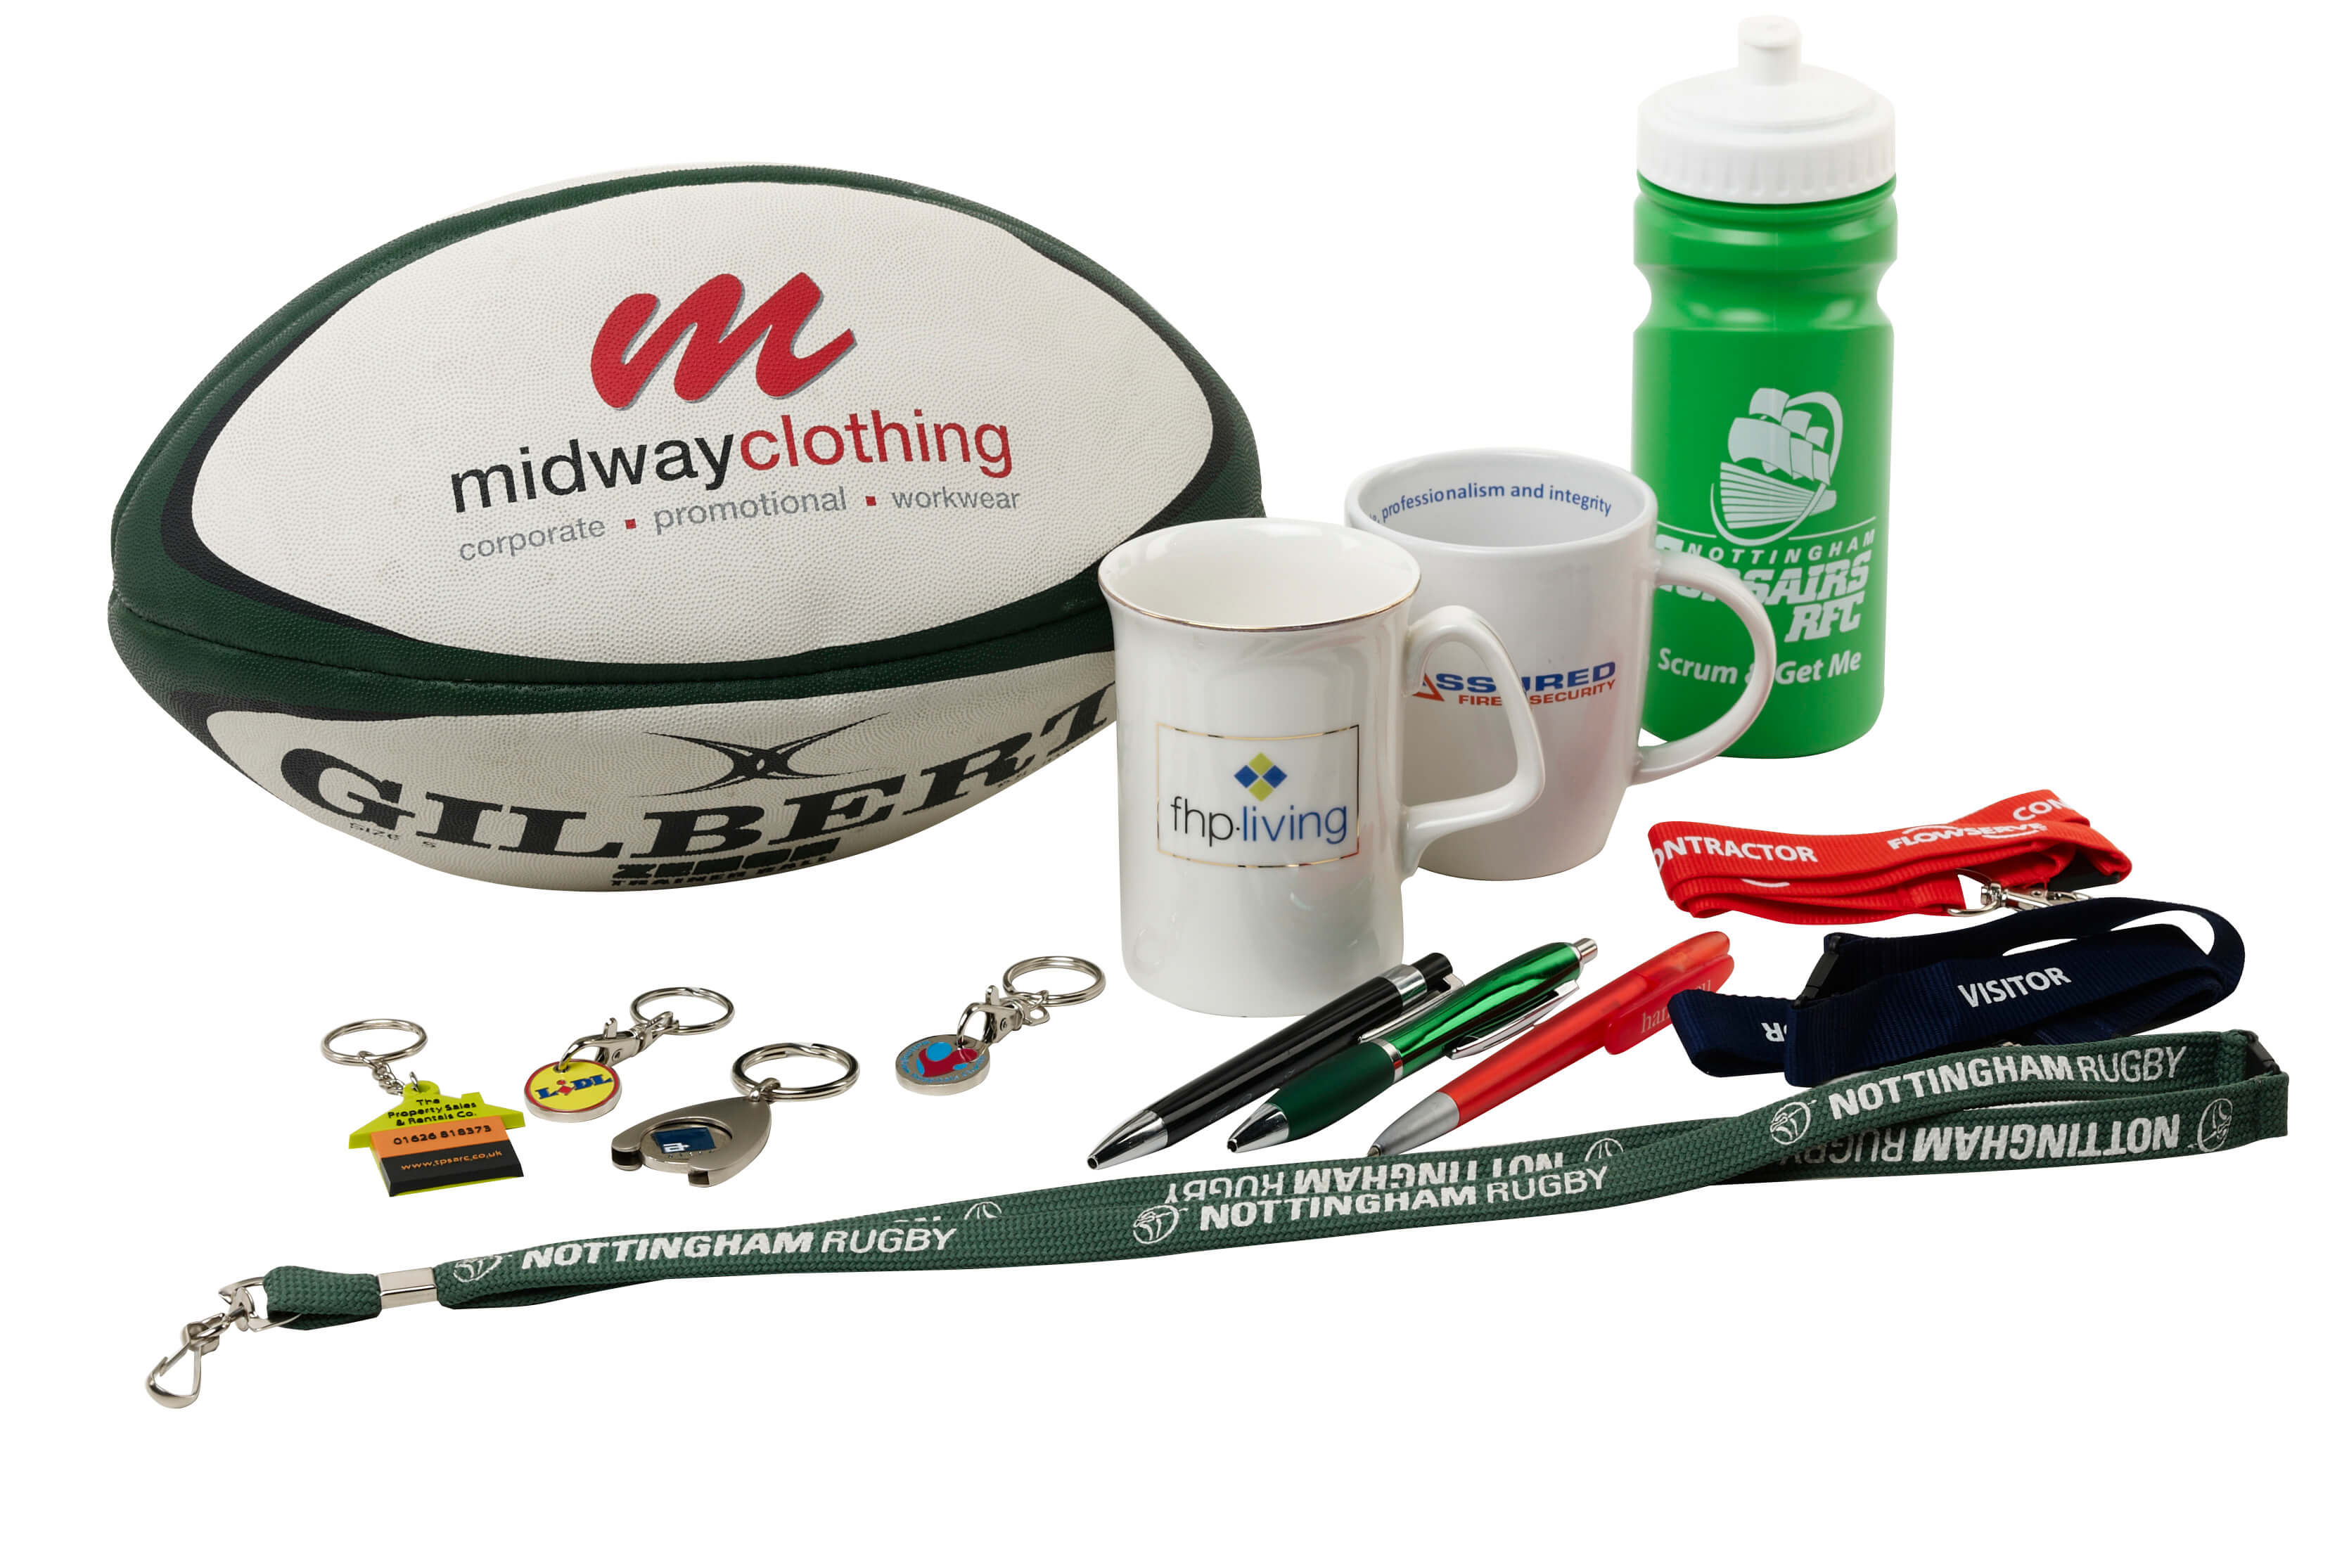 Midway Clothing & Promotions